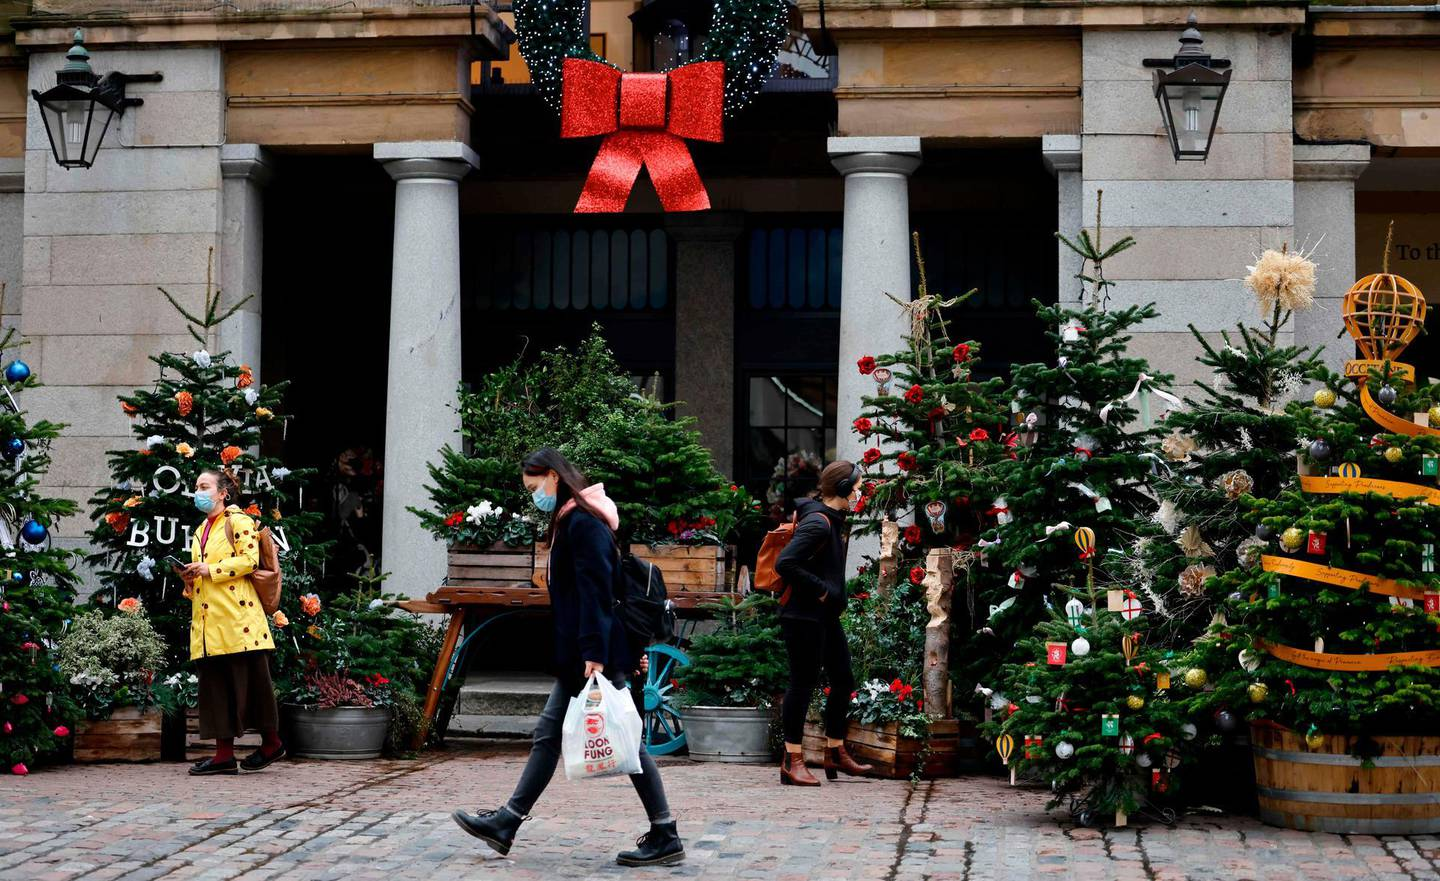 Pedestrians wearing face masks or coverings due to the COVID-19 pandemic, walk past Christmas trees in Covent Garden in central London on November 17, 2020. Britain has been the worst-hit nation in Europe recording more than 50,000 coronavirus deaths from some 1.2 million positive cases. / AFP / Tolga Akmen